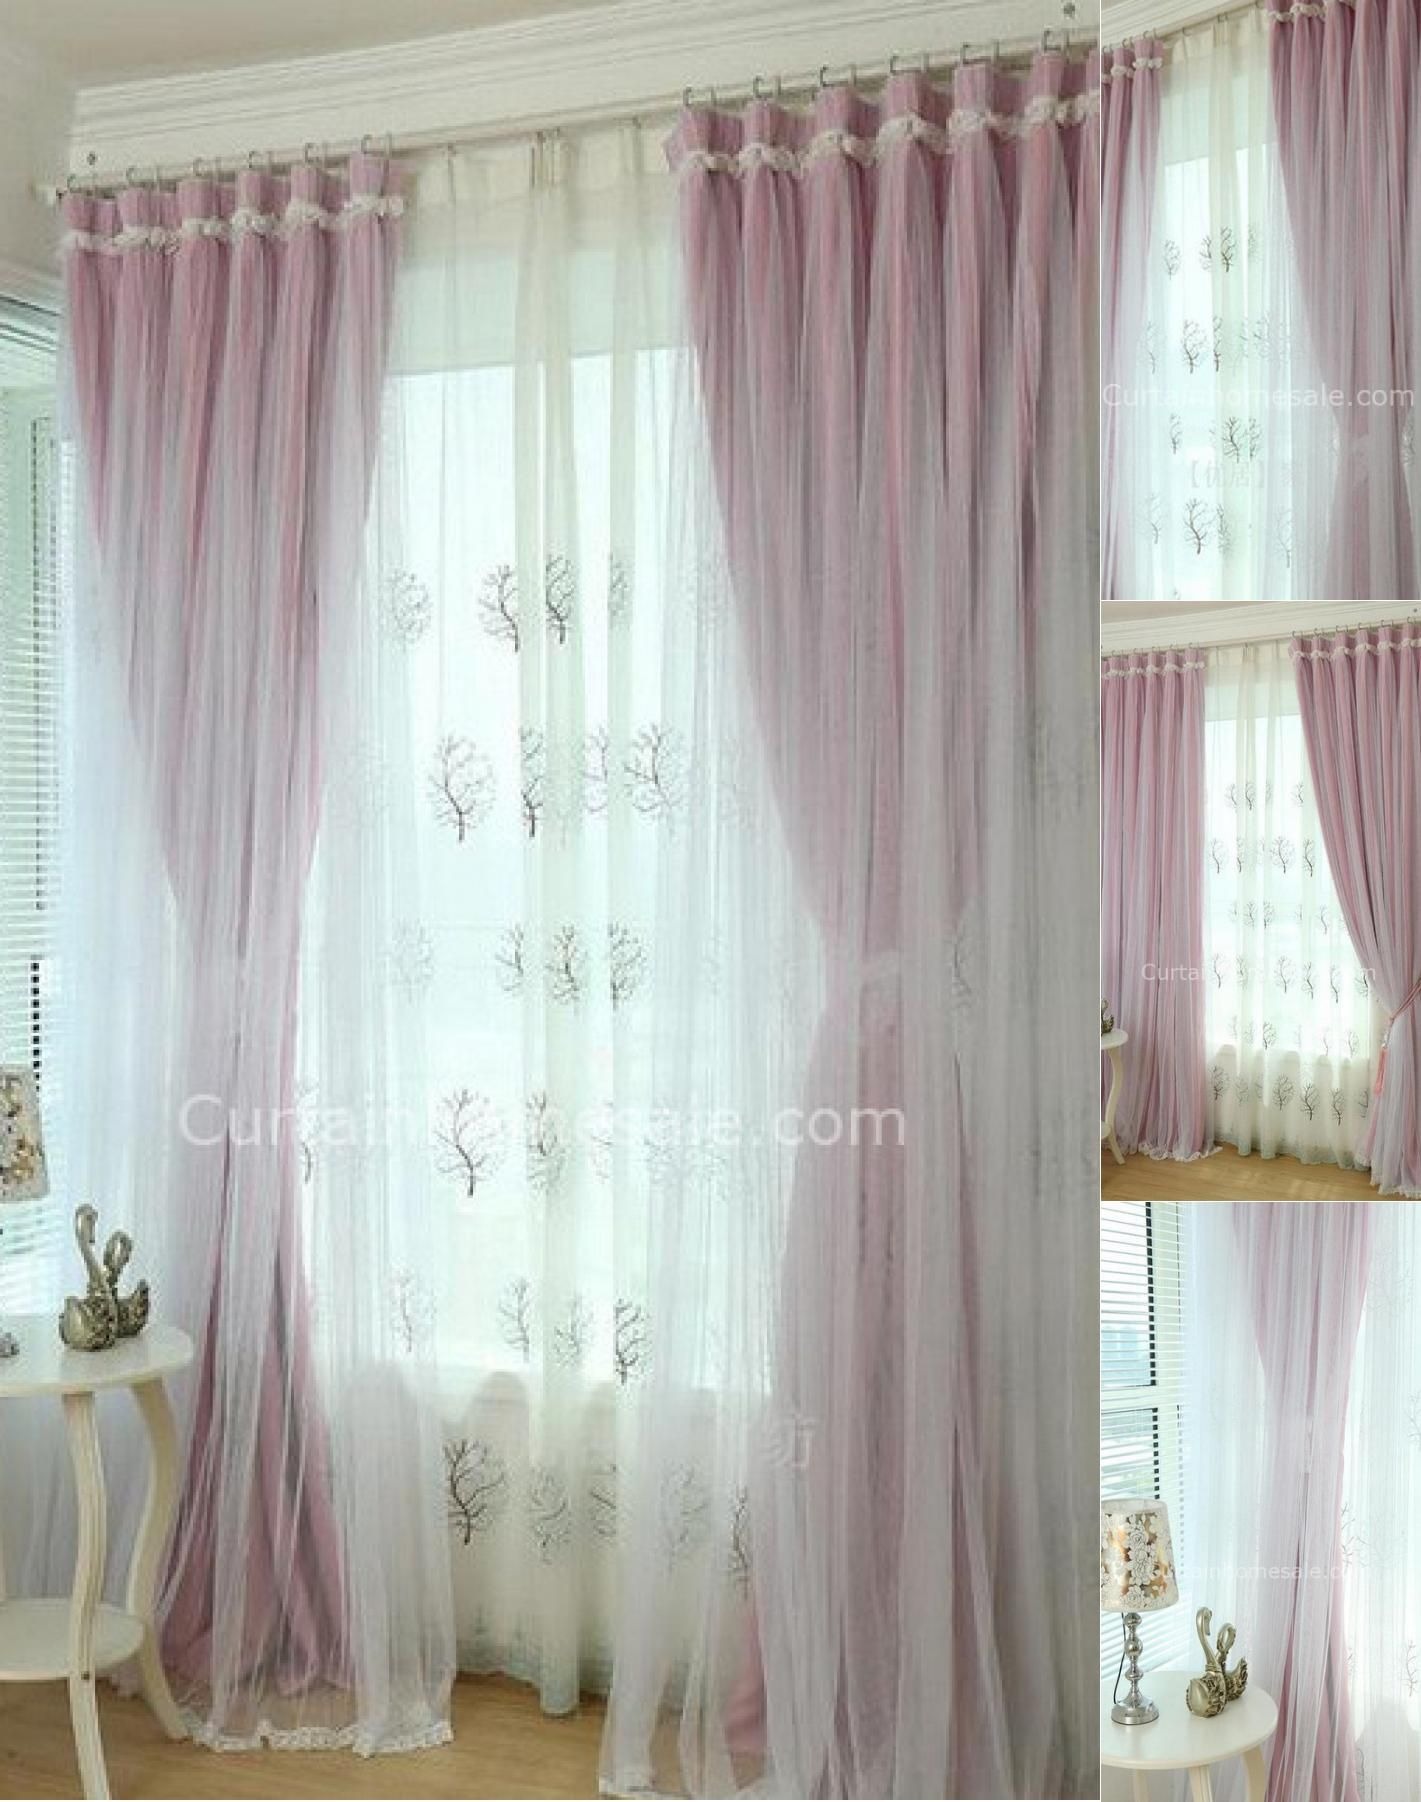 room lovely curtain girls striped create bedroom wall pink ideas girly painting bed and beige theme by curtains wooden fabric sheet nuance connected for on kids of